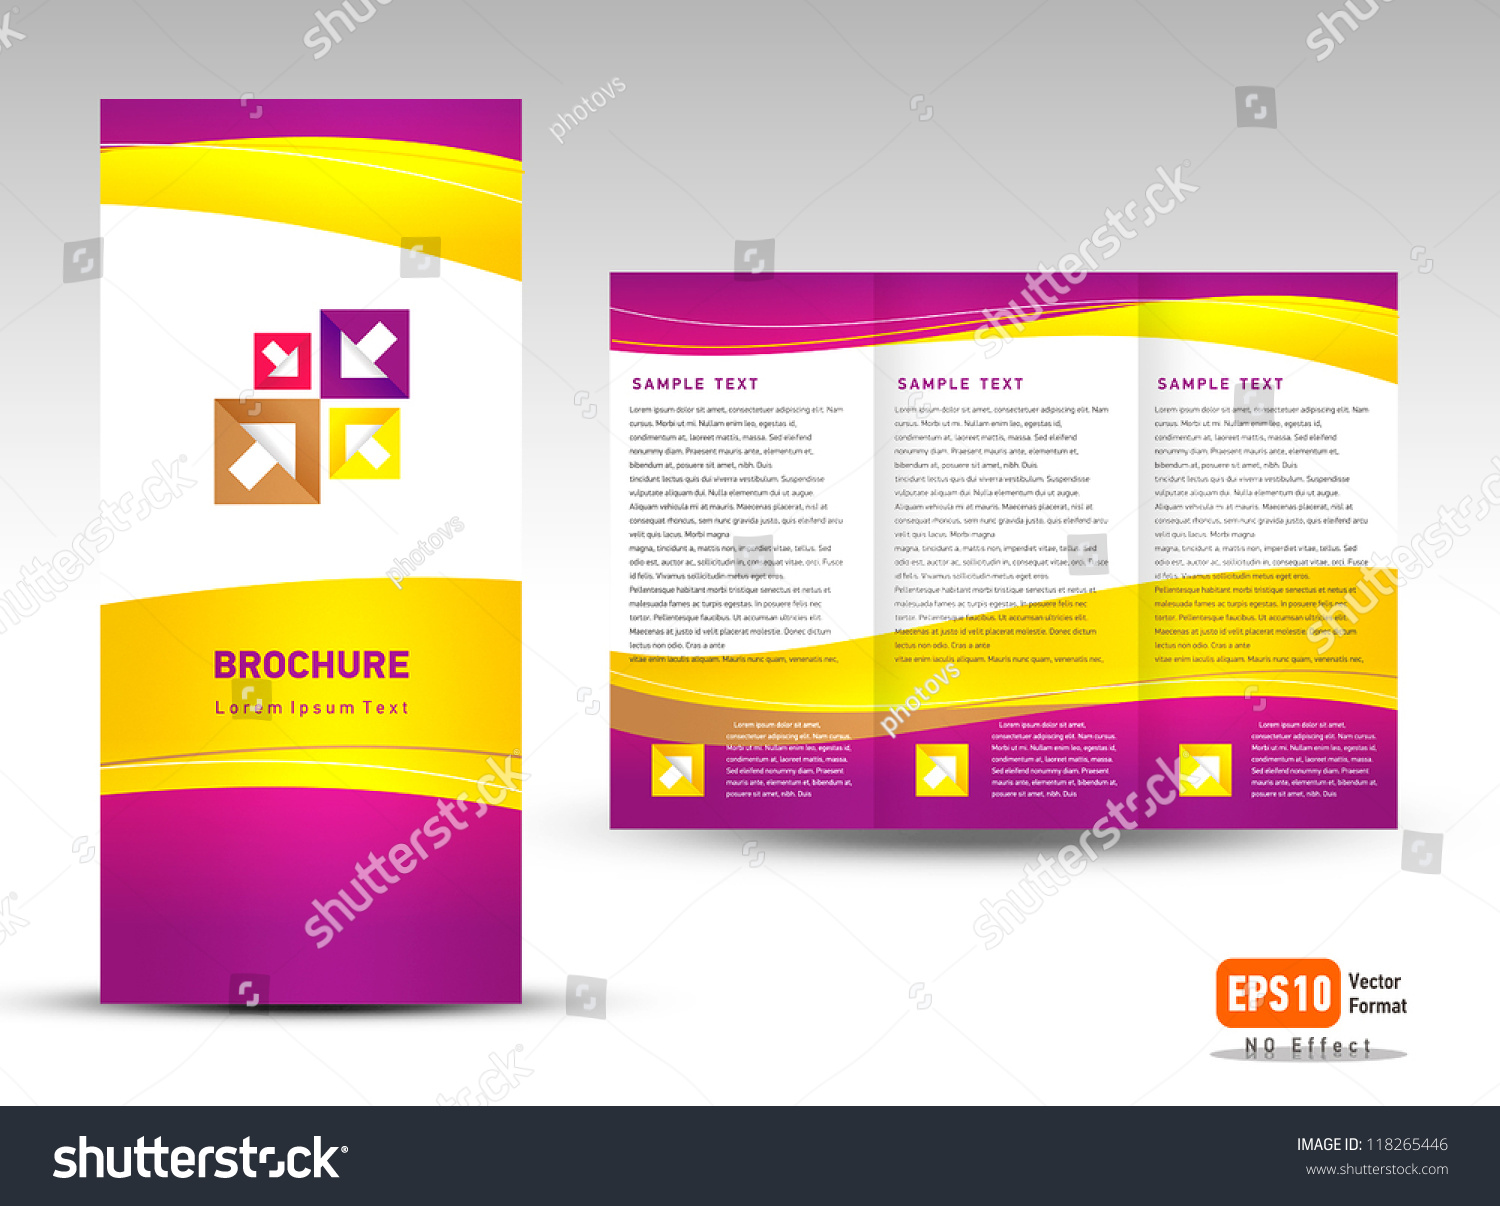 Vector Brochure Trifold Layout Design Template Stock Vector ...